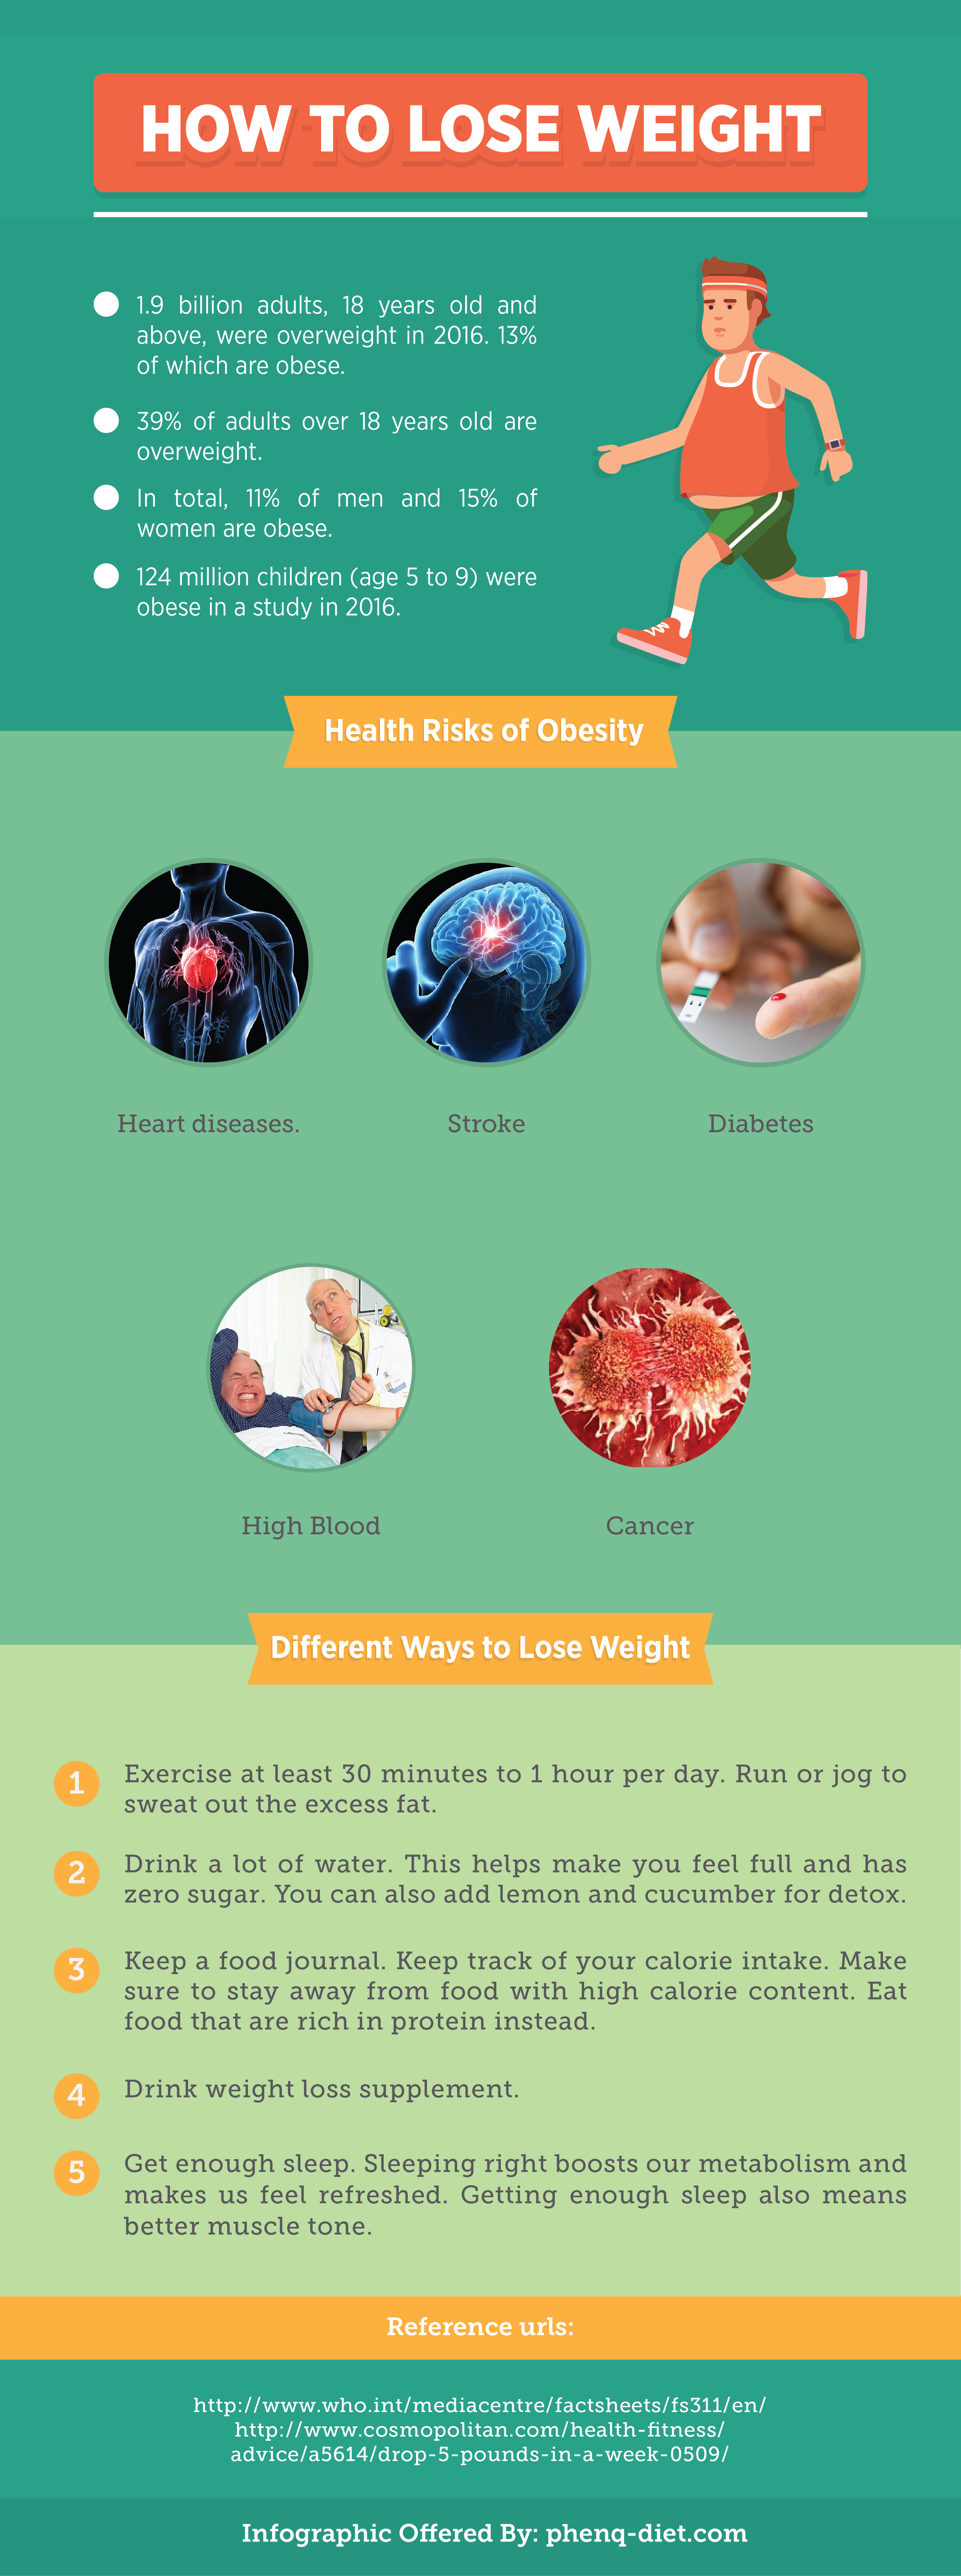 Pin By Allan Chiu On How To Lose Weight Easily Pinterest Weight